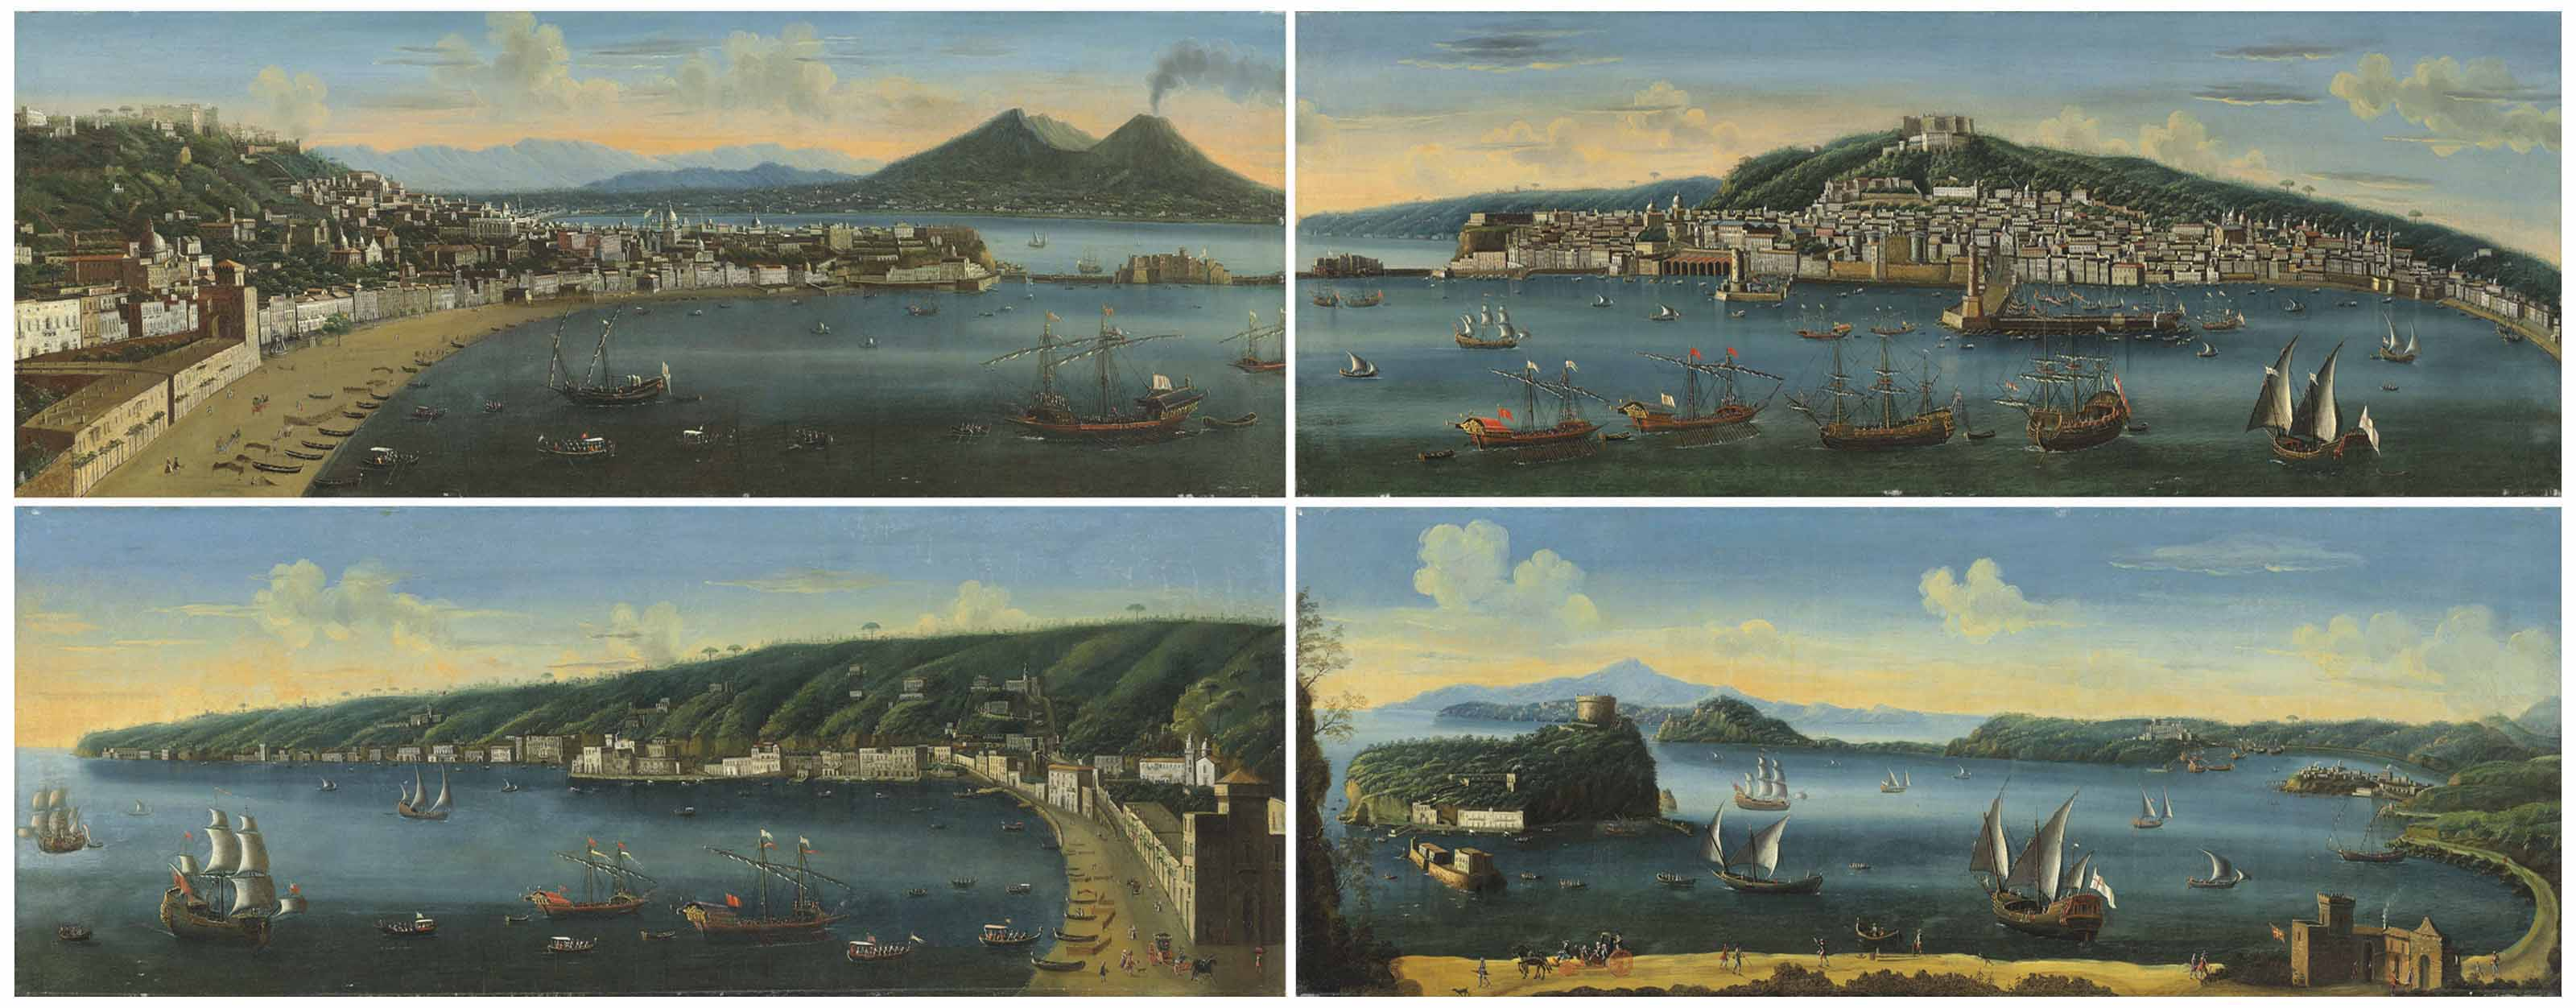 A set of four views of Naples: Naples, a view of the bay taken from Posillipo looking towards Mount Vesuvius; Naples, seenfrom the Castel Dell'Ovo, with the Riviera di Chiaia and Posillipo beyond; Naples, seen from the bay, with the Molo Grande in the centre and the Castel Dell'Ovo; Naples, a view of the Gulf of Pozzuoli and the Port of Baia